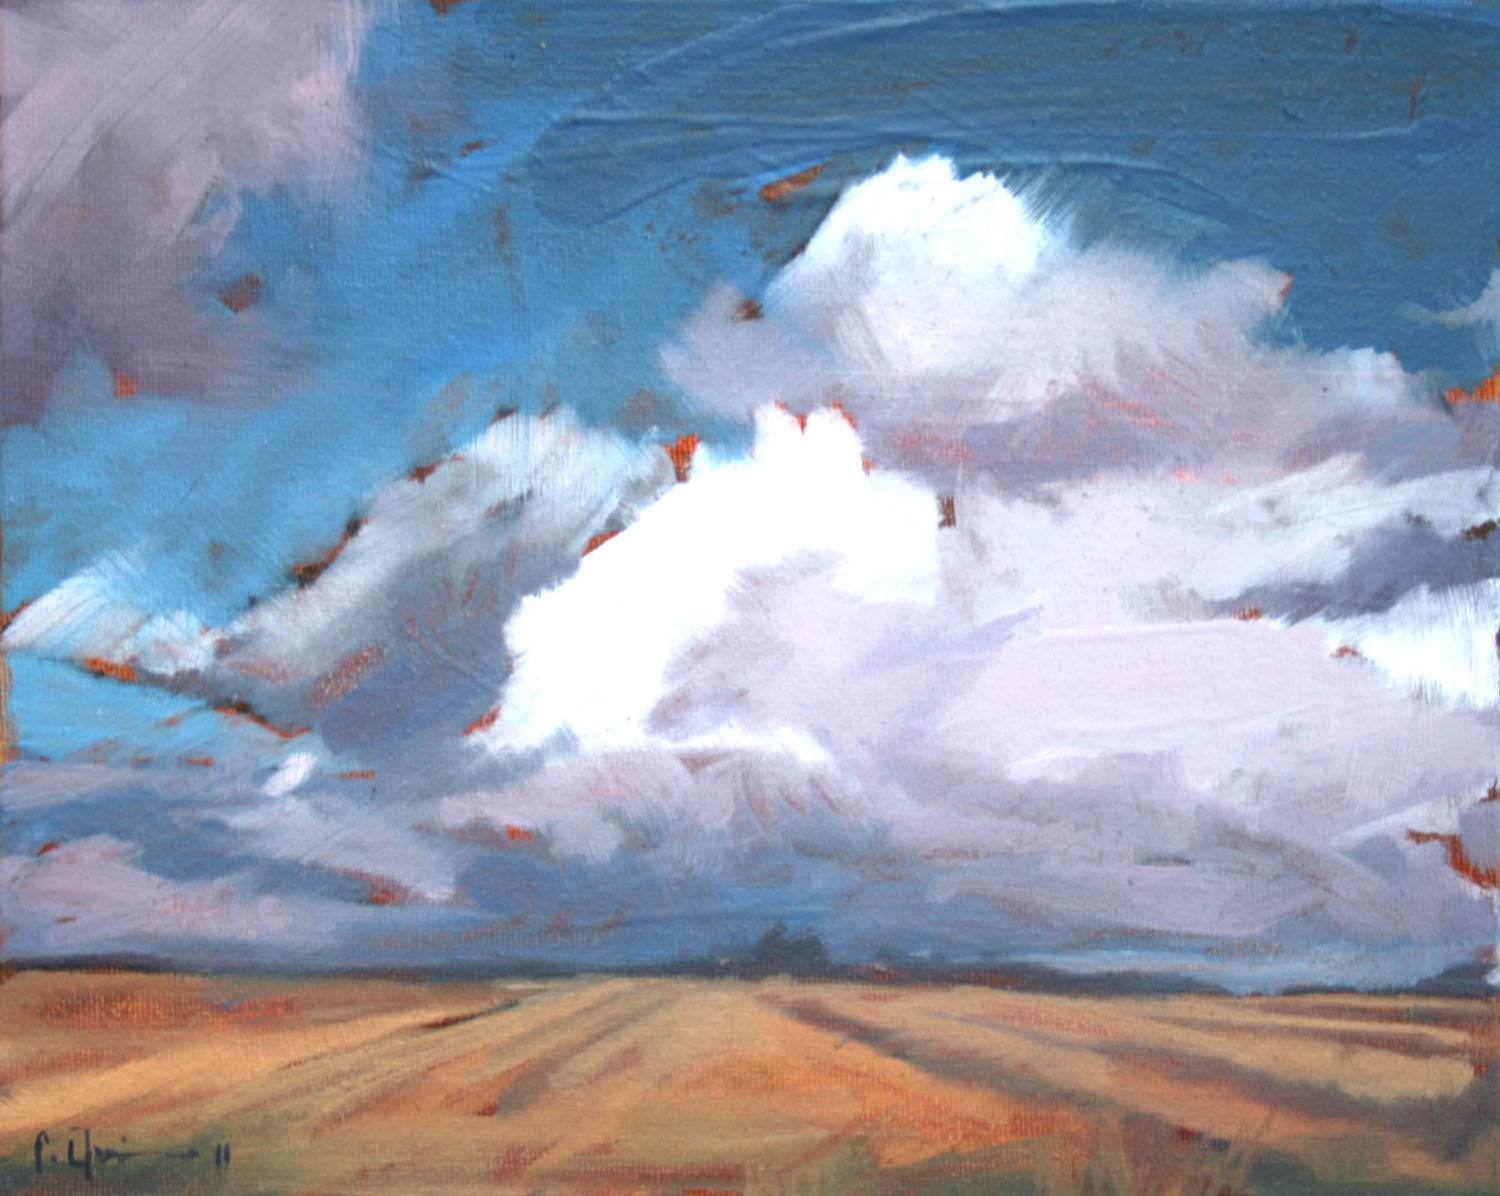 Tracey Quinn_2011_Cloud Cornfield_oil on canvas_20 x 25cm.jpg